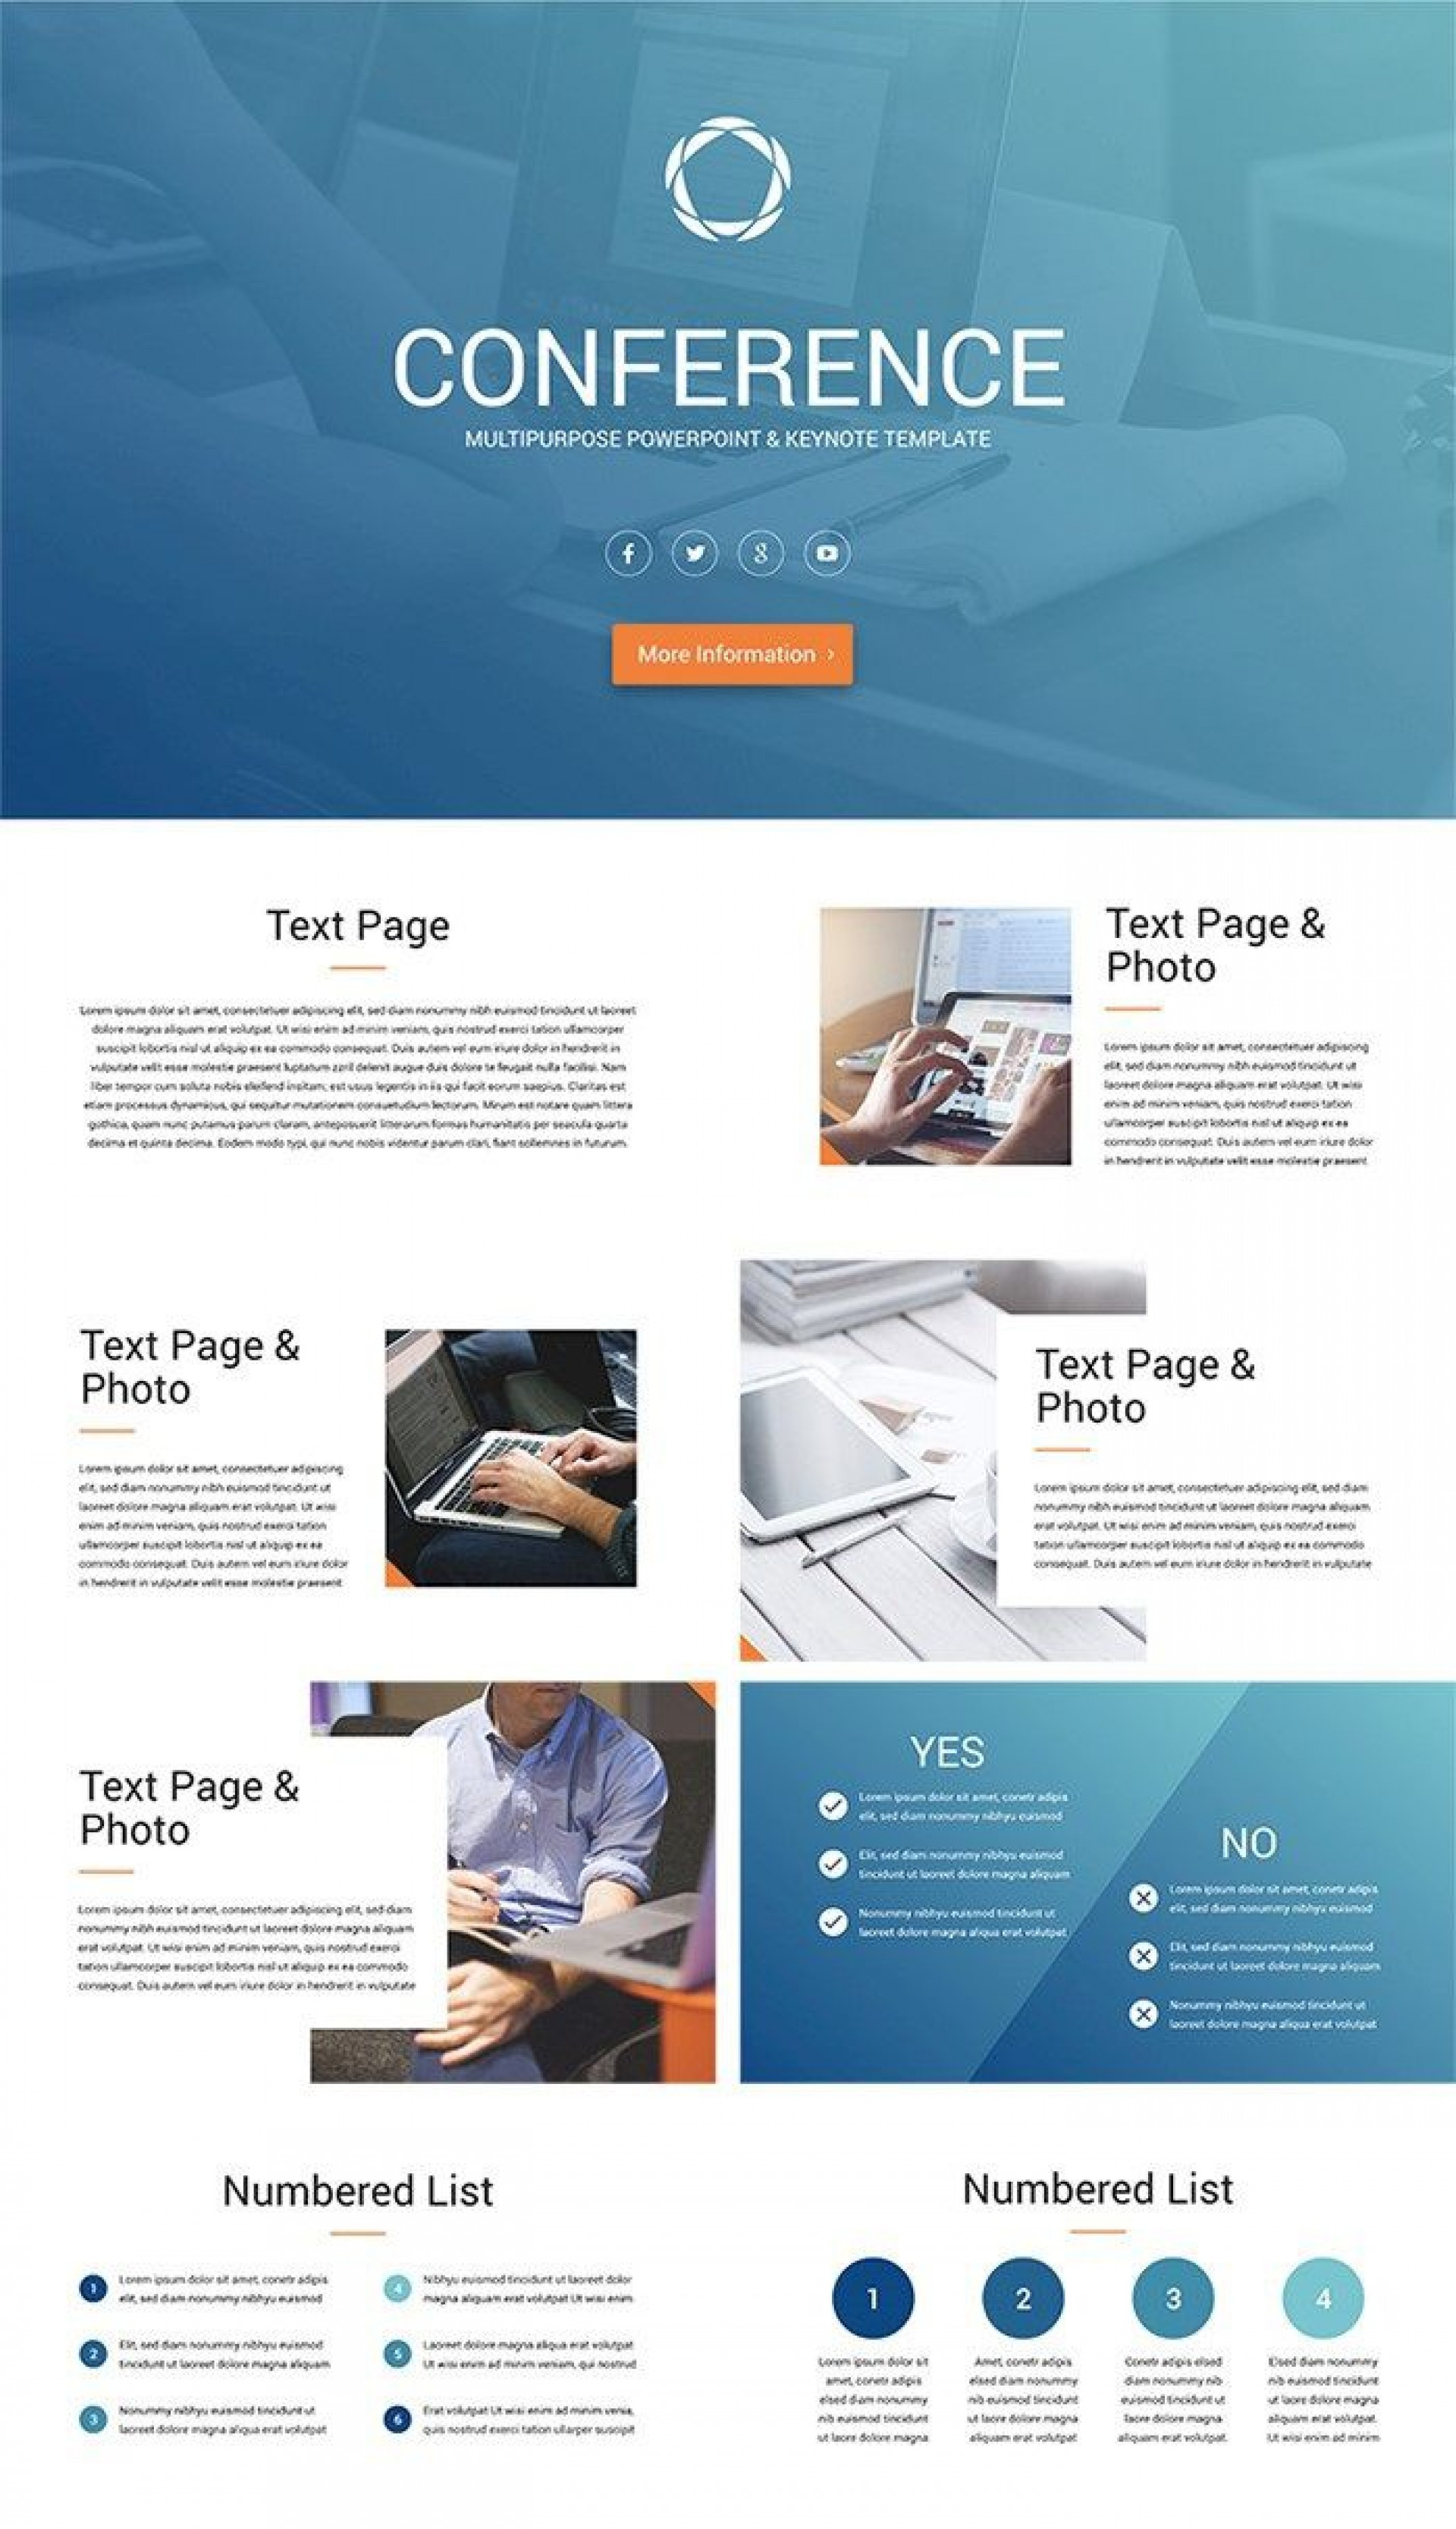 004 Imposing Ppt Template For Seminar Presentation Free Download Photo 1920